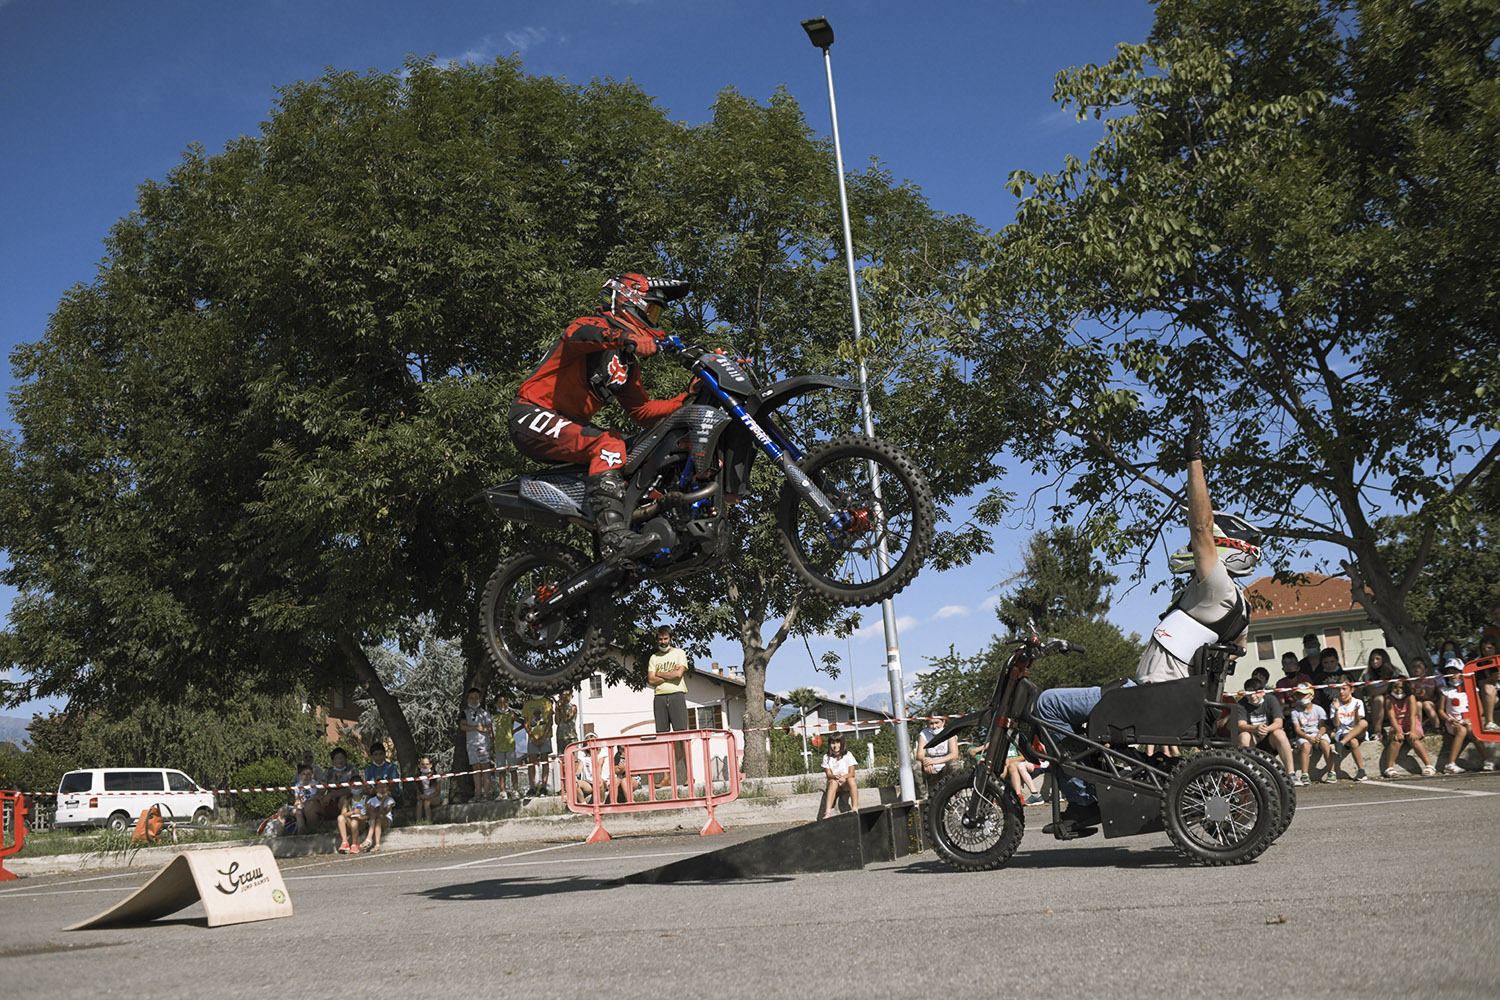 Graw jump Ramps Mask to ride_aug21 (1)